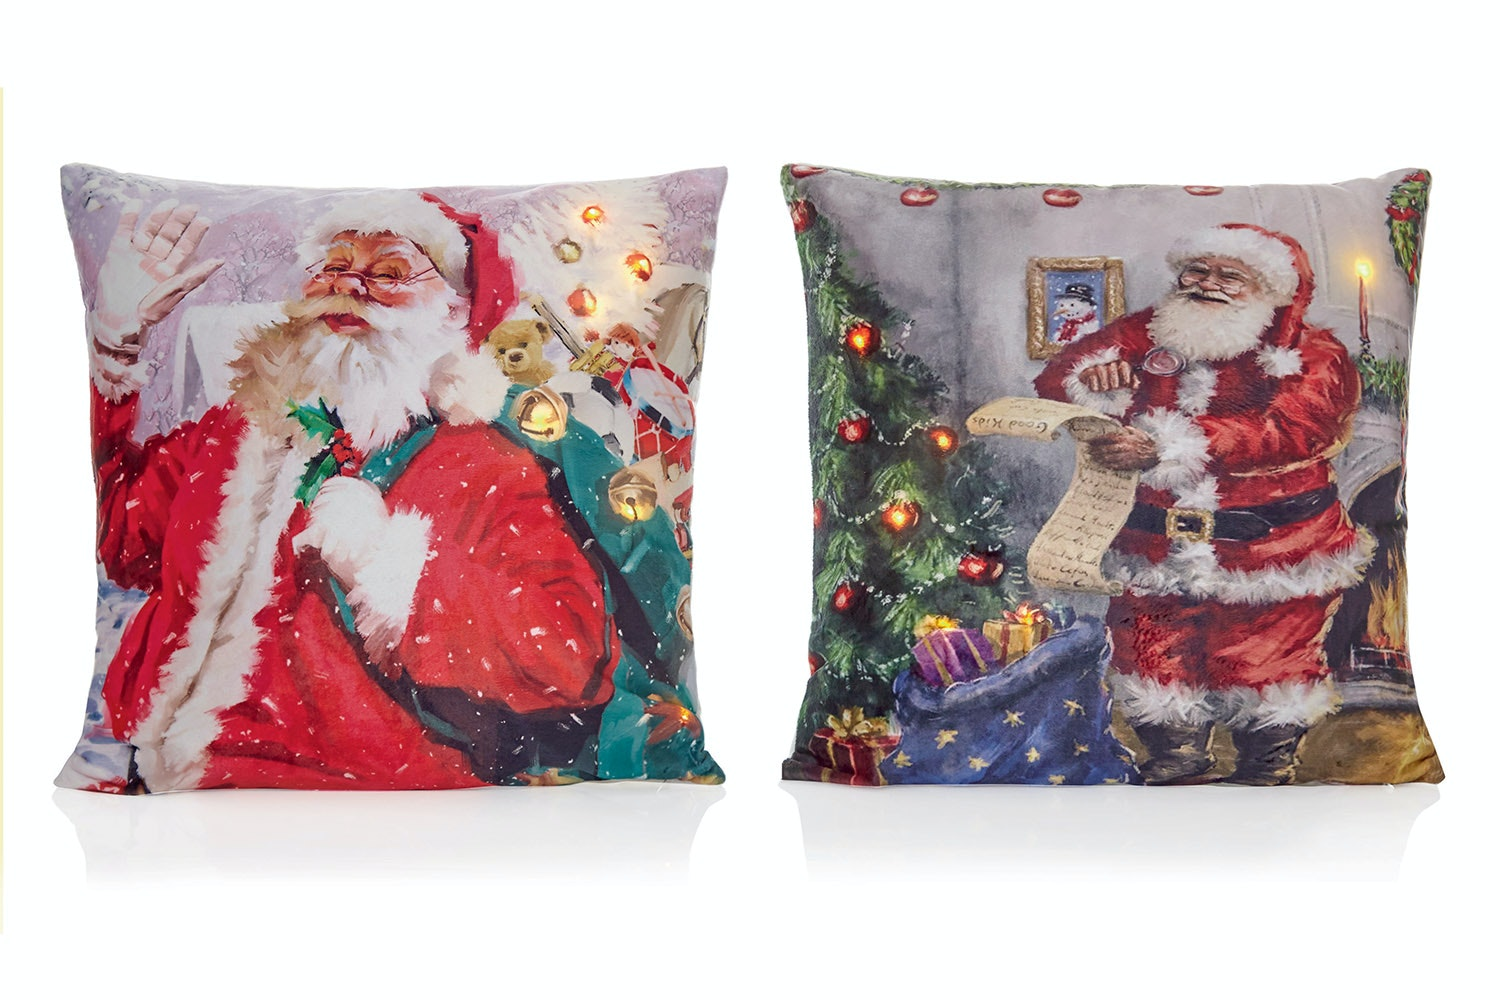 Santa Cushion - Light Up